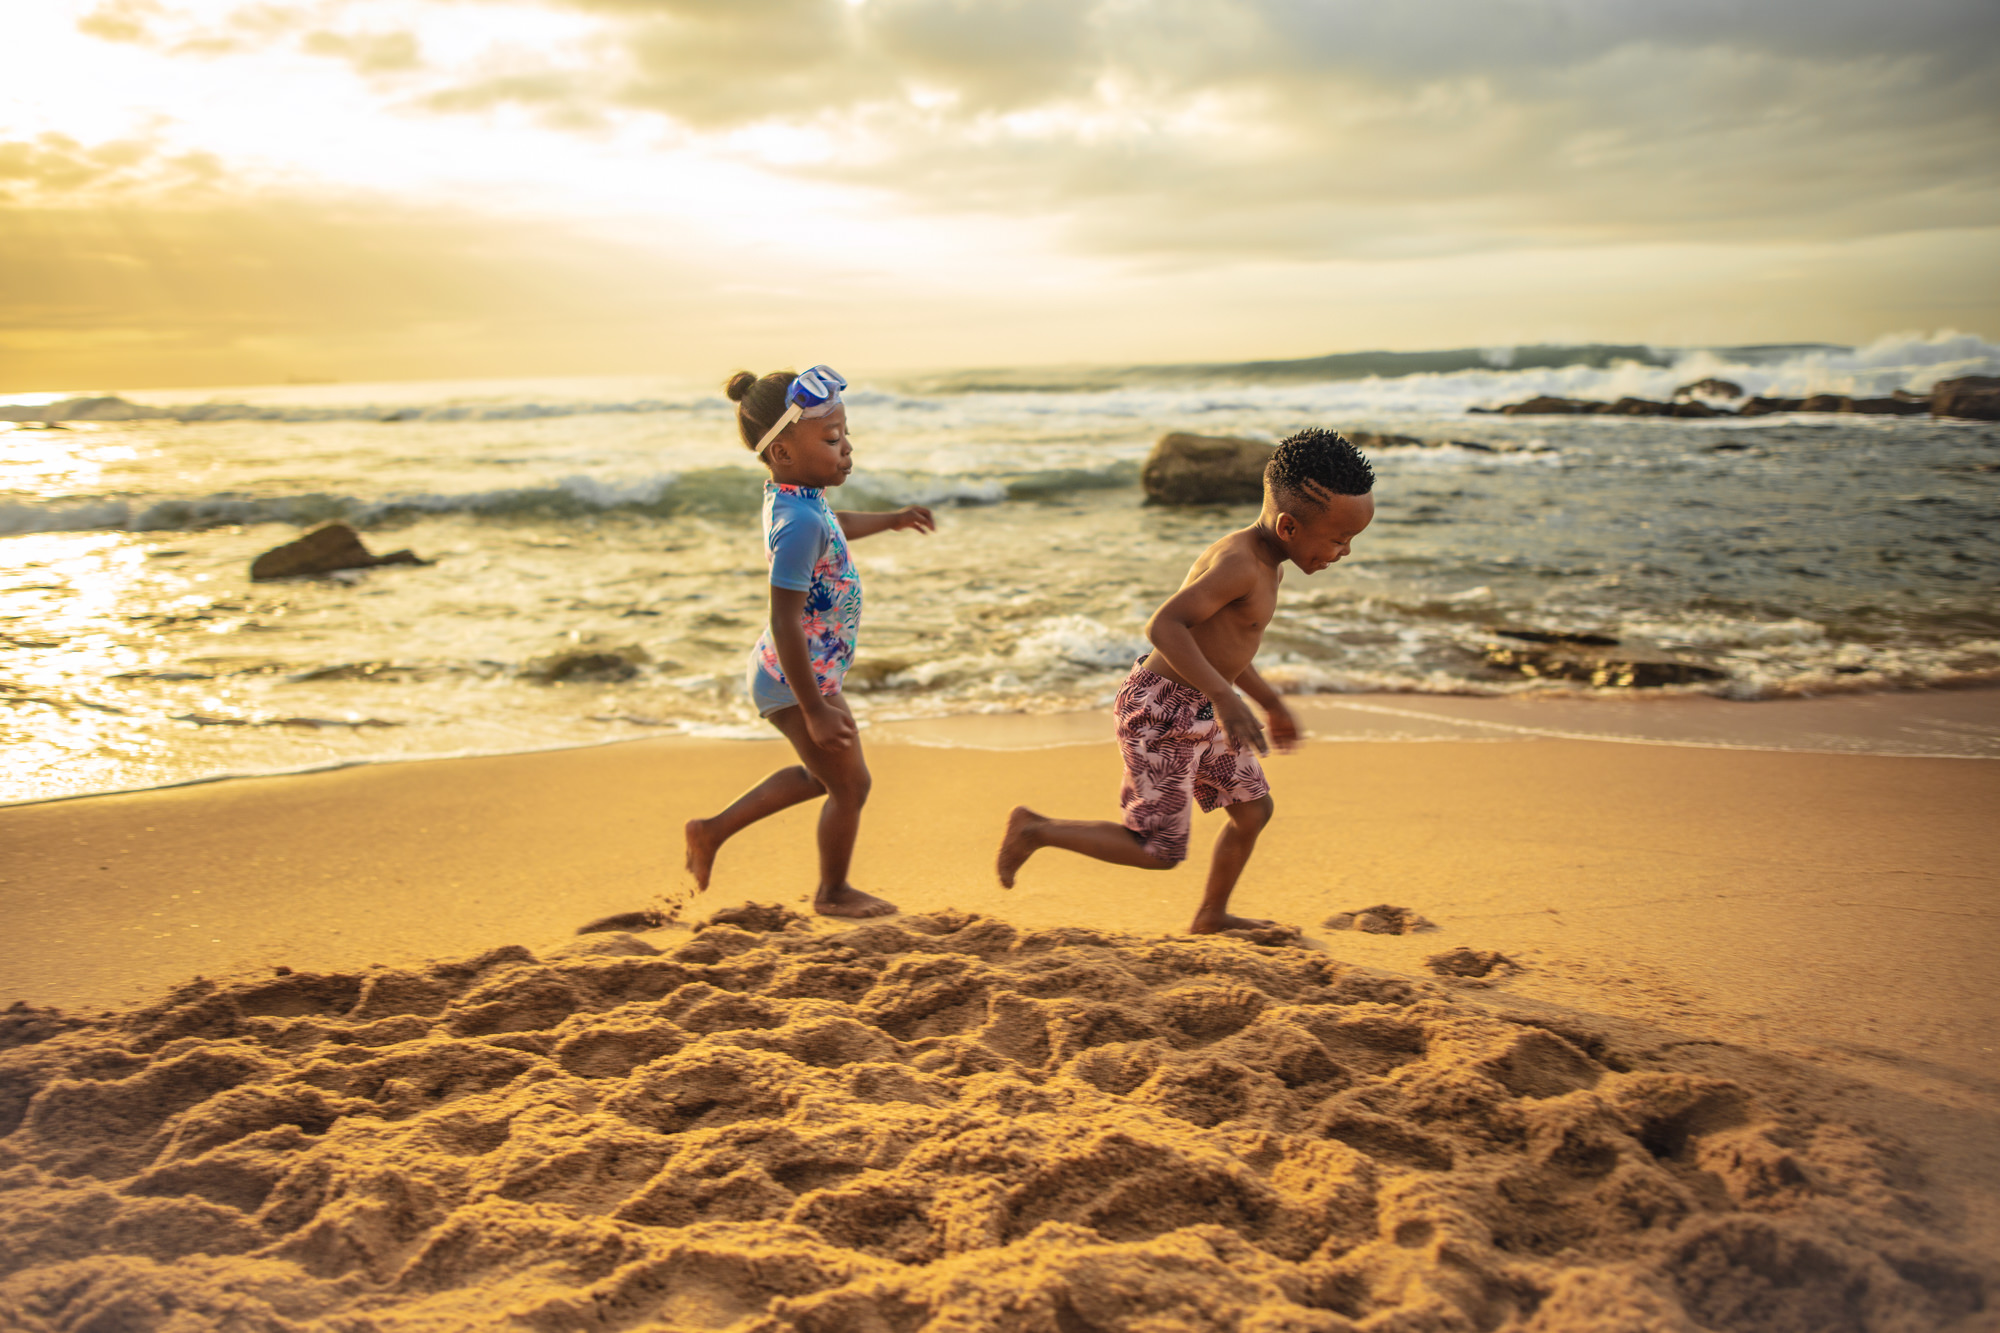 Image of children having funon the beach for Tsogo Sun's Image Library & Content Library by Michelle Wastie Photography